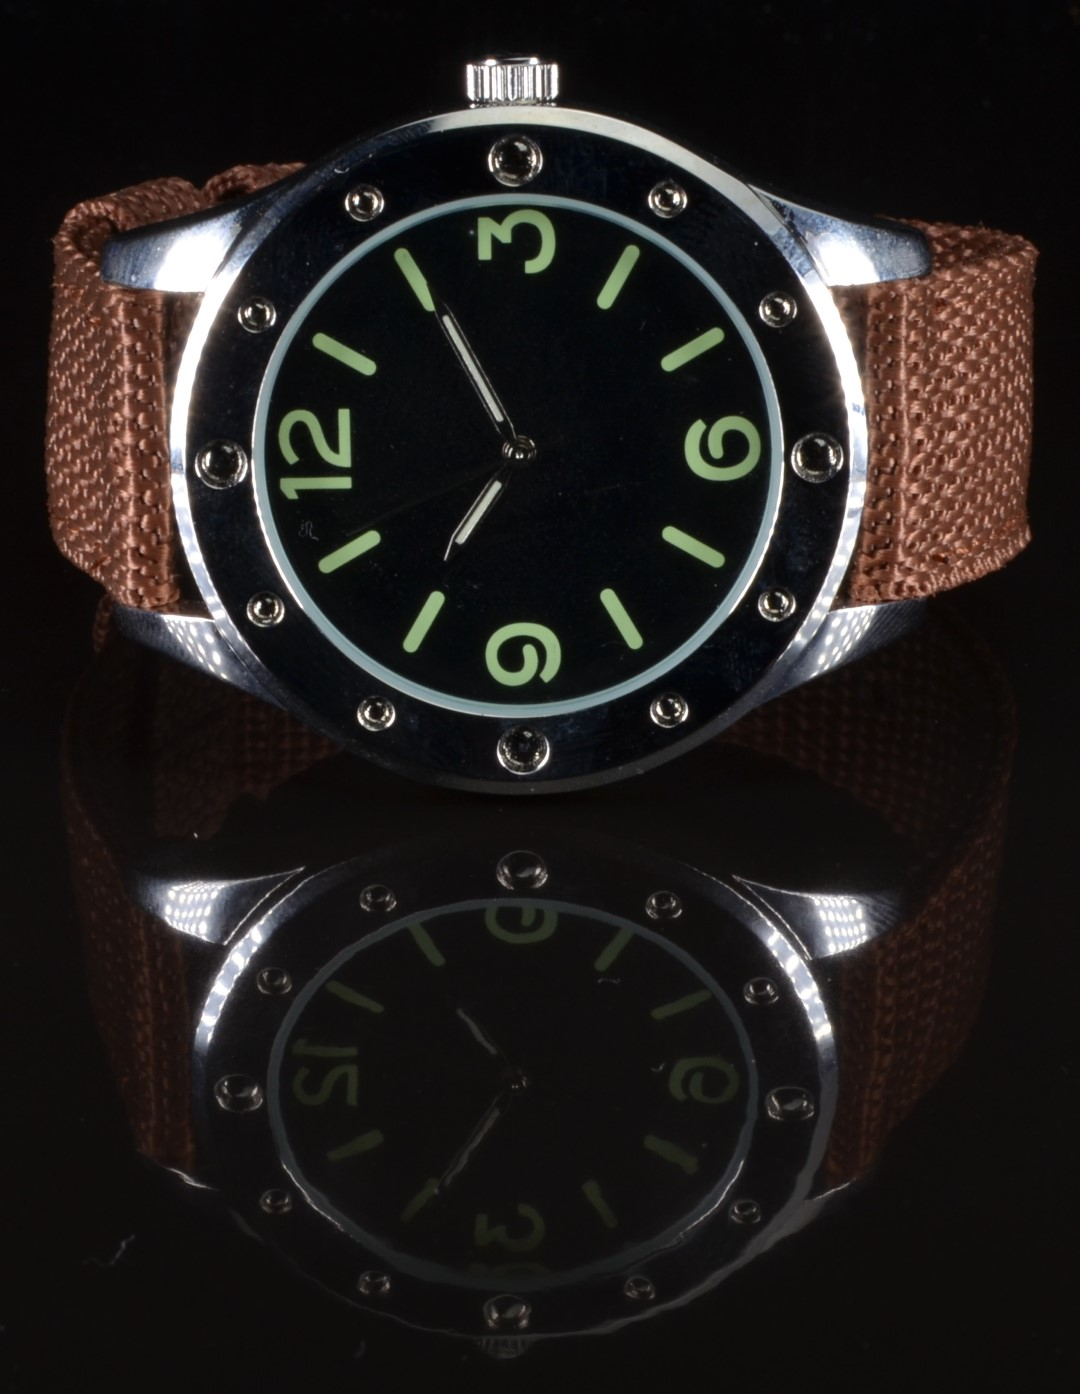 Egyptian Naval Commander's military diver's style gentleman's wristwatch with luminous hands and - Image 2 of 3